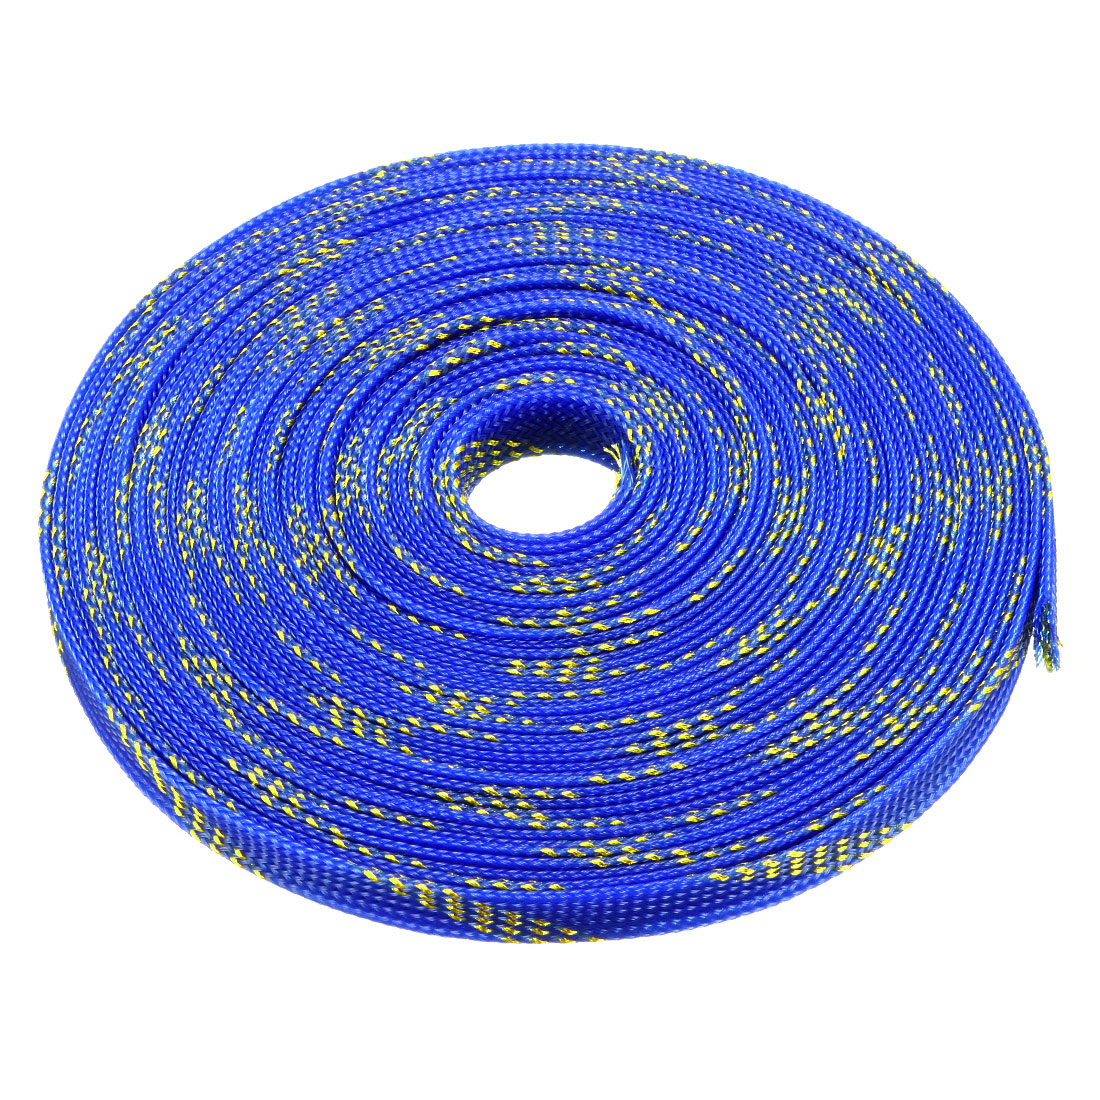 12mm Dia Tight Braided PET Expandable Sleeving Cable Wrap Sheath Golden Blue 32Ft